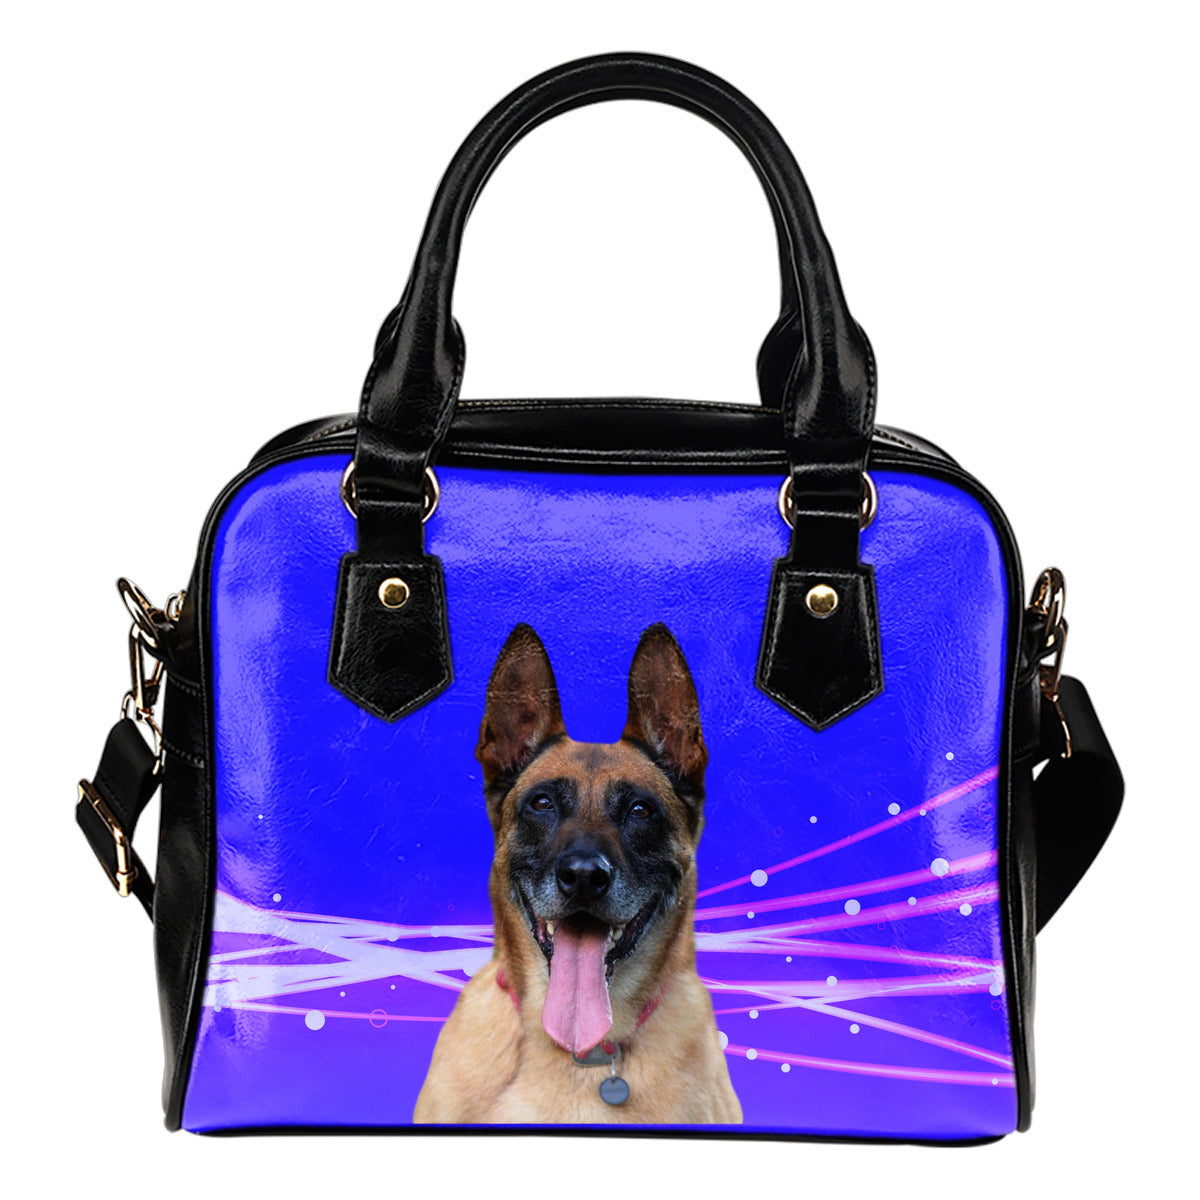 Belgian Malinois Shoulder Bag